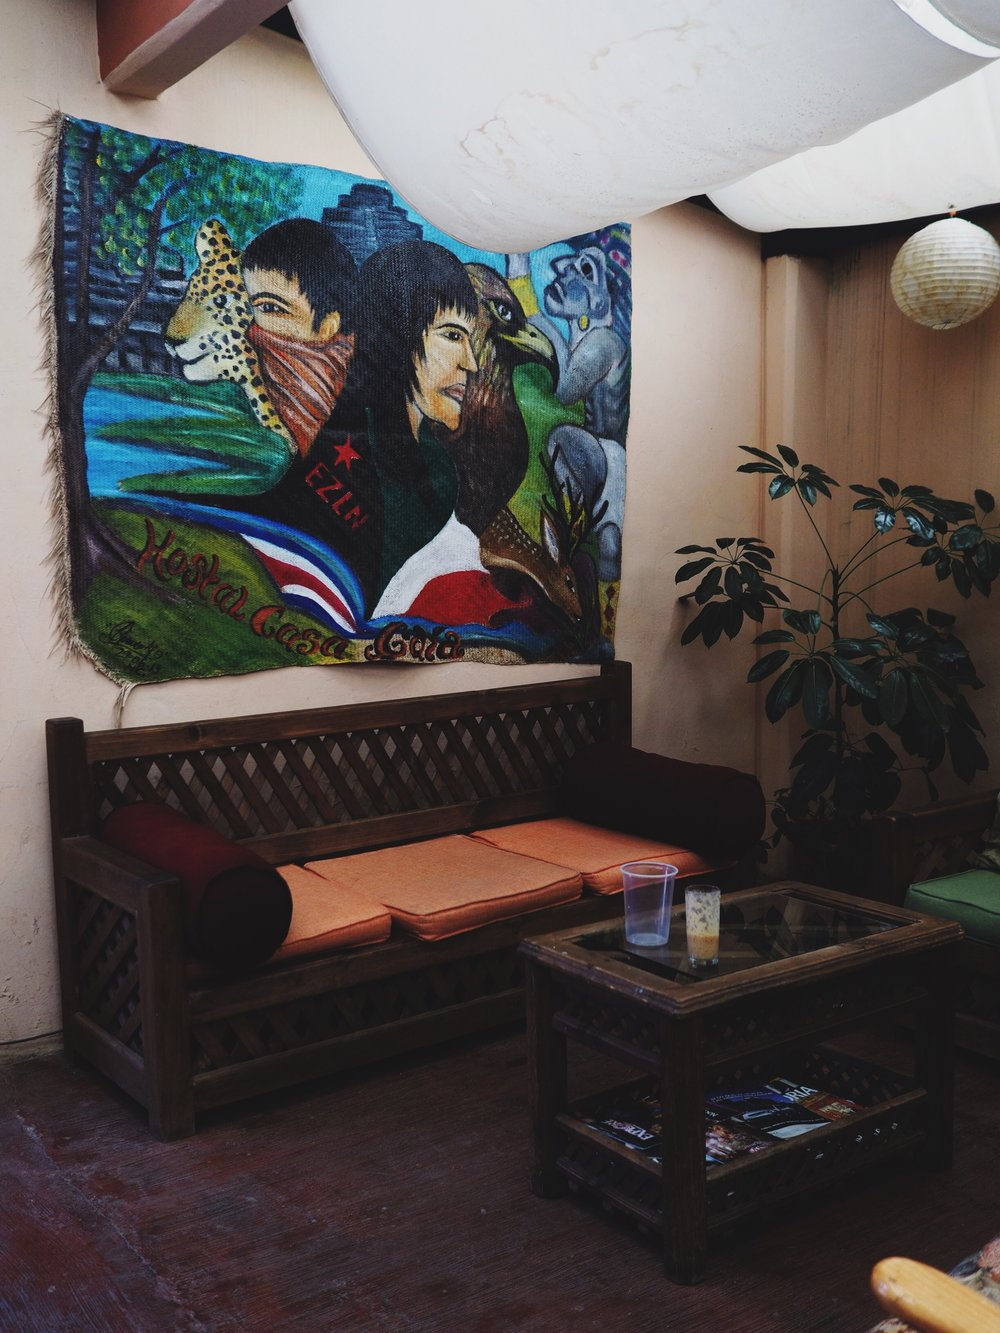 Casa Gaia's living room, complete with Zapatista painting